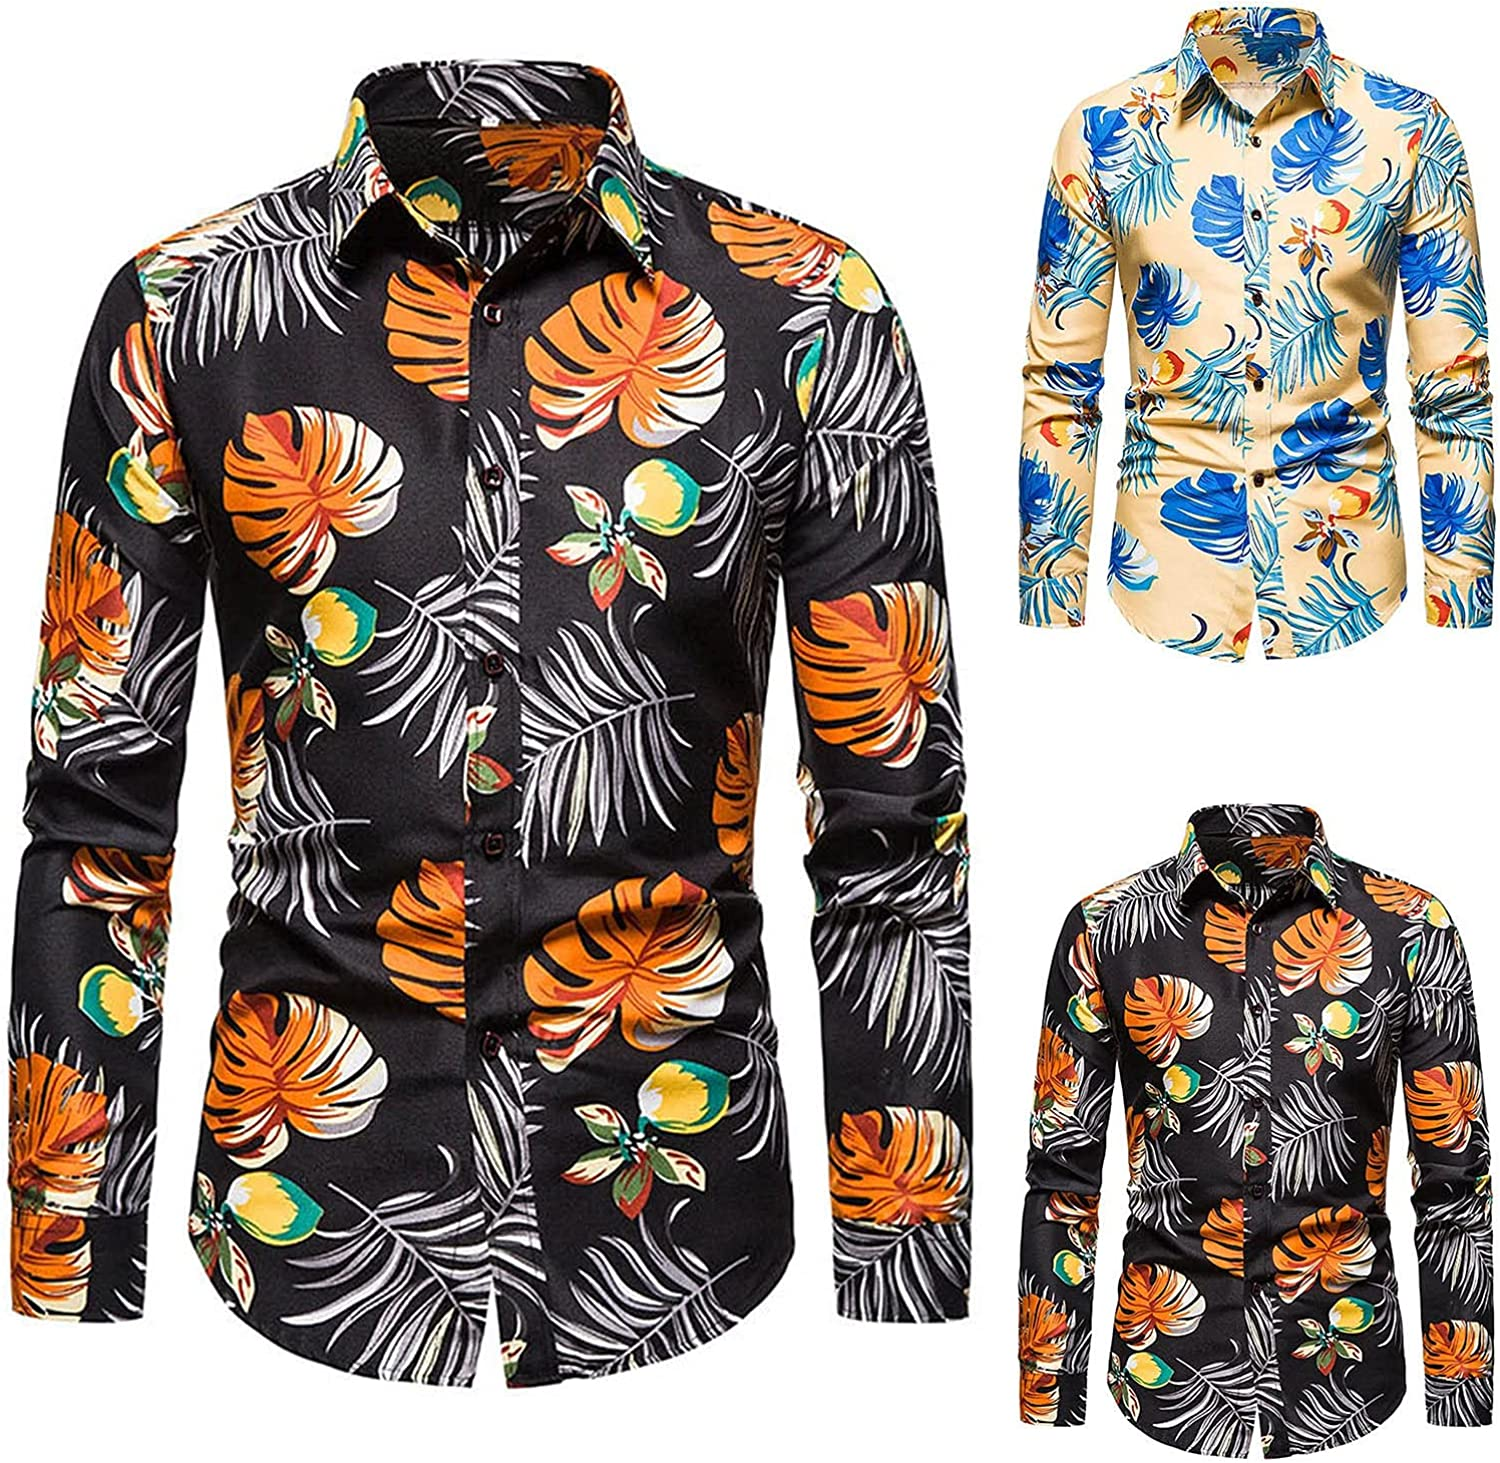 xoxing Long Sleeve for Men T-Shirt Casual Loose Cardigan Floral Print Lapel Button Quick Dry Beach T Shirts